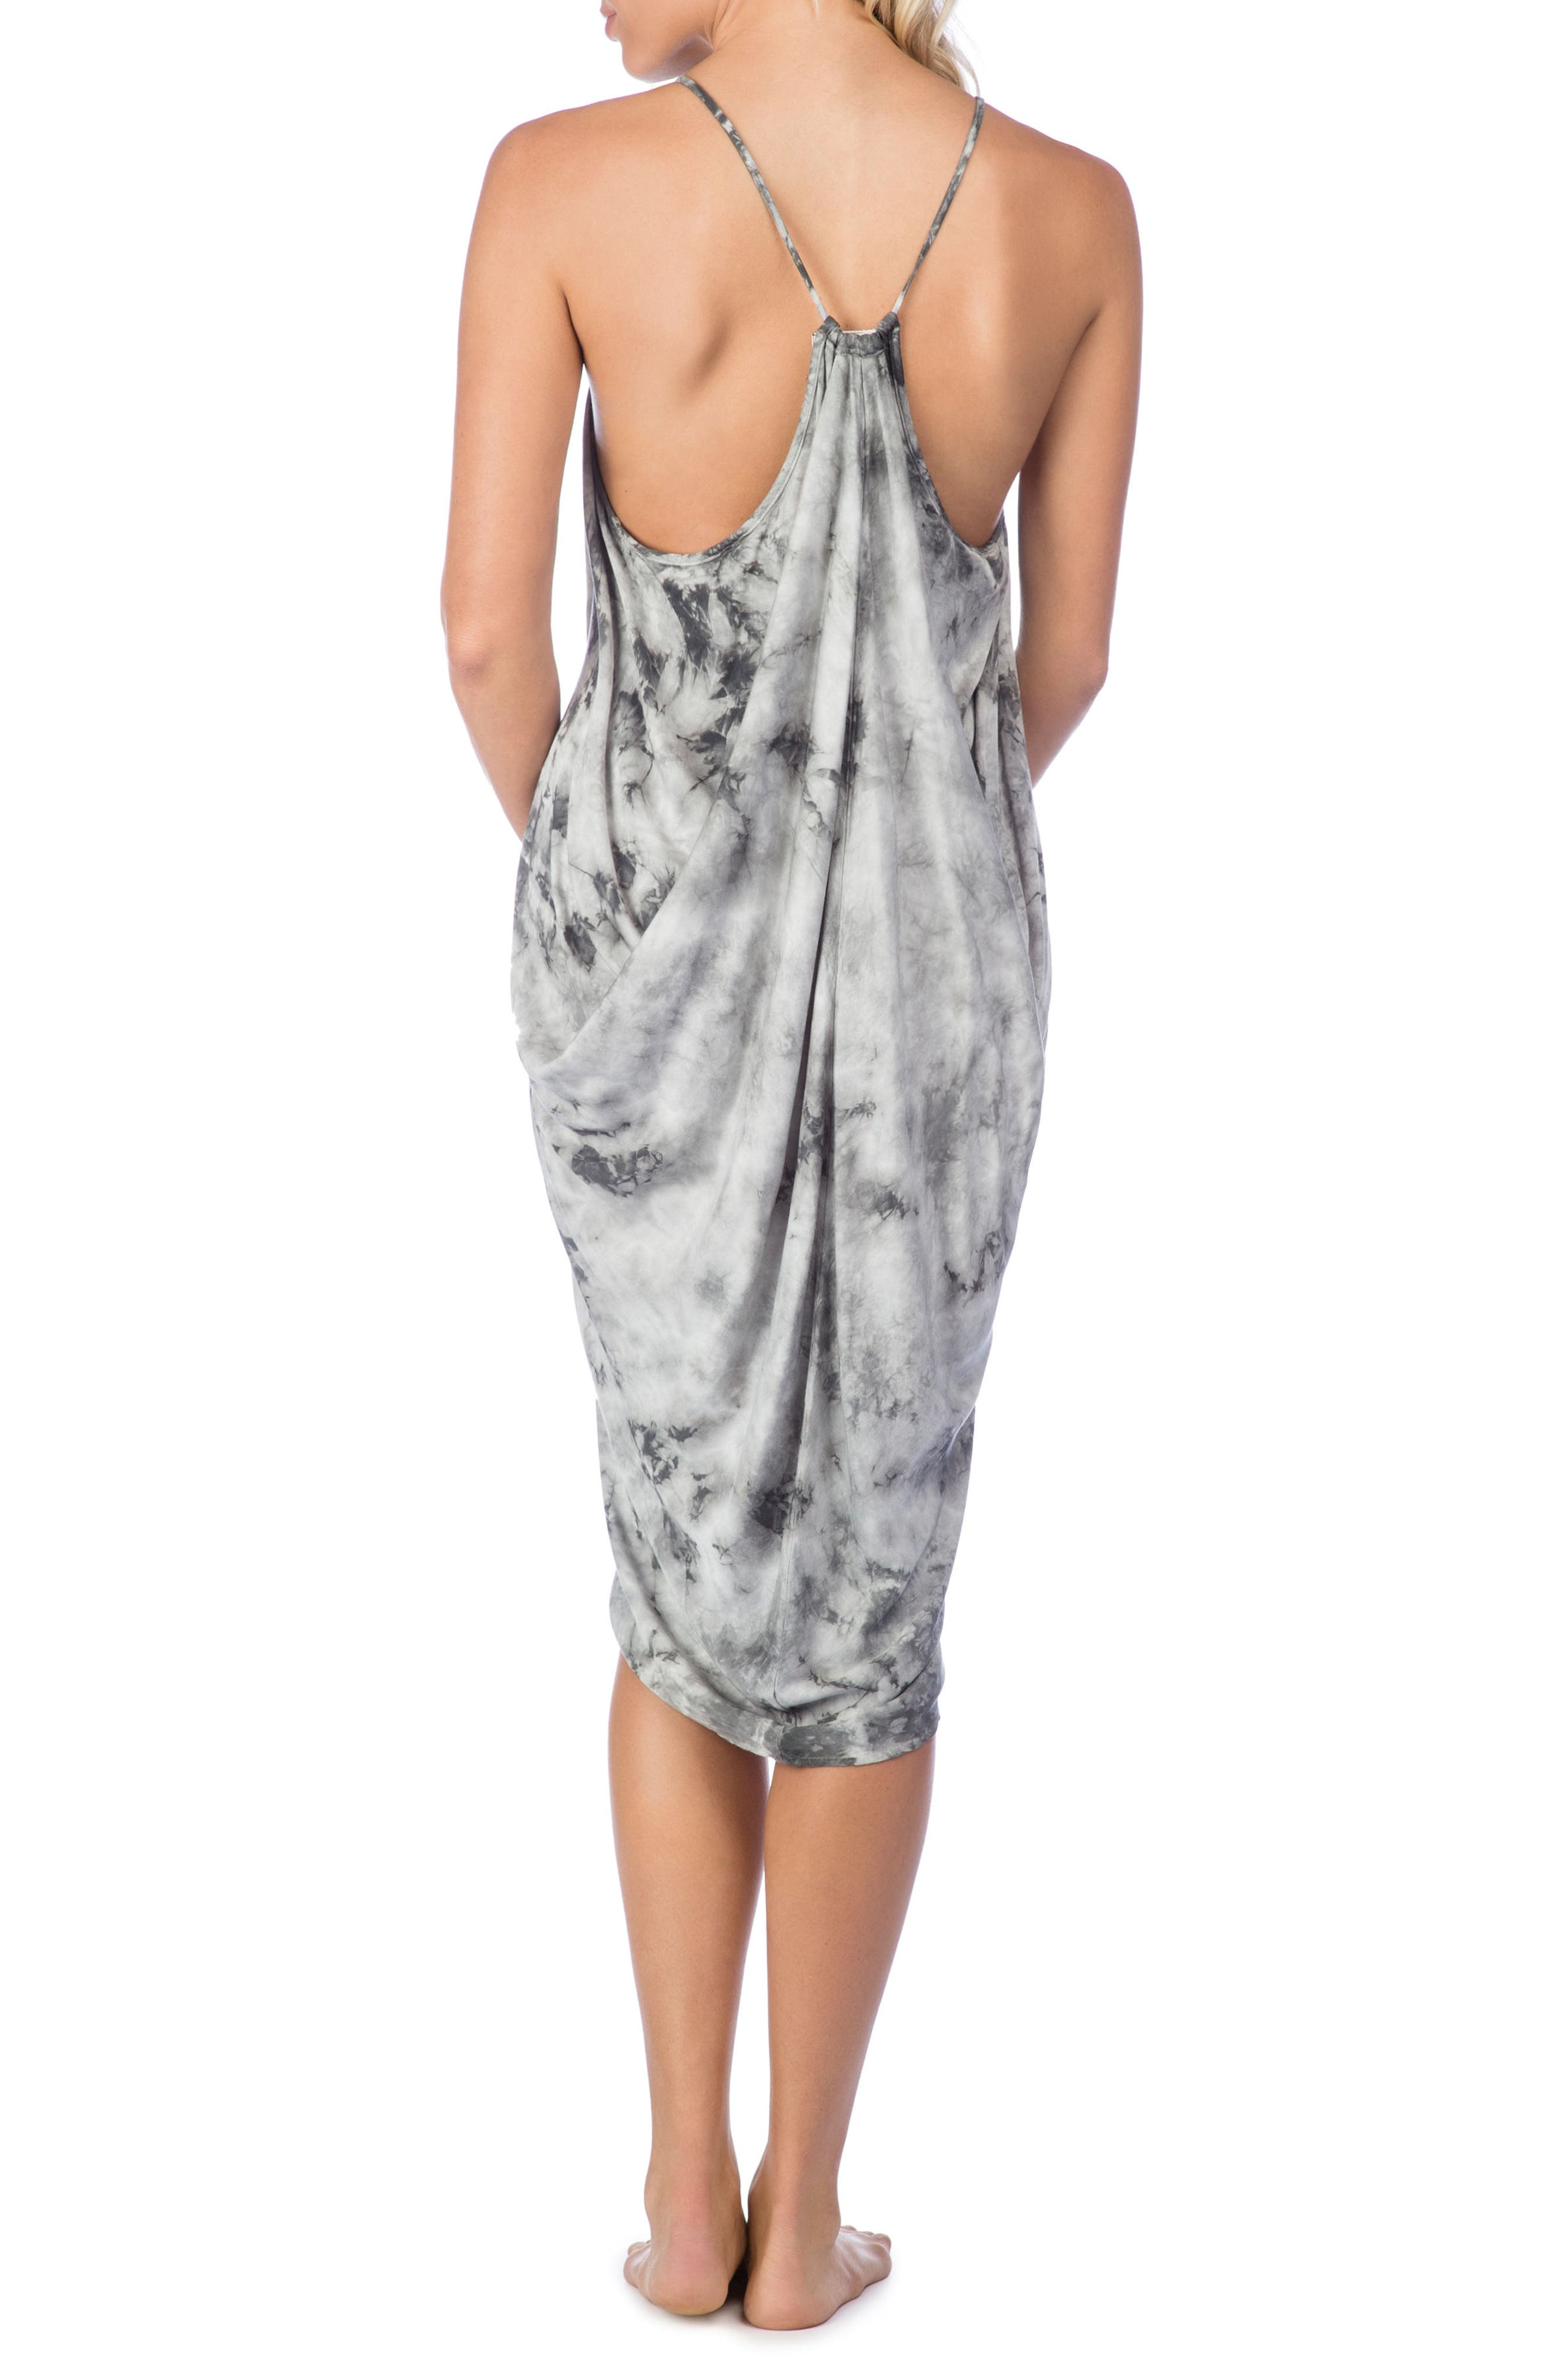 Crystal Forest Genvieve Cover-Up Dress,                             Alternate thumbnail 2, color,                             020